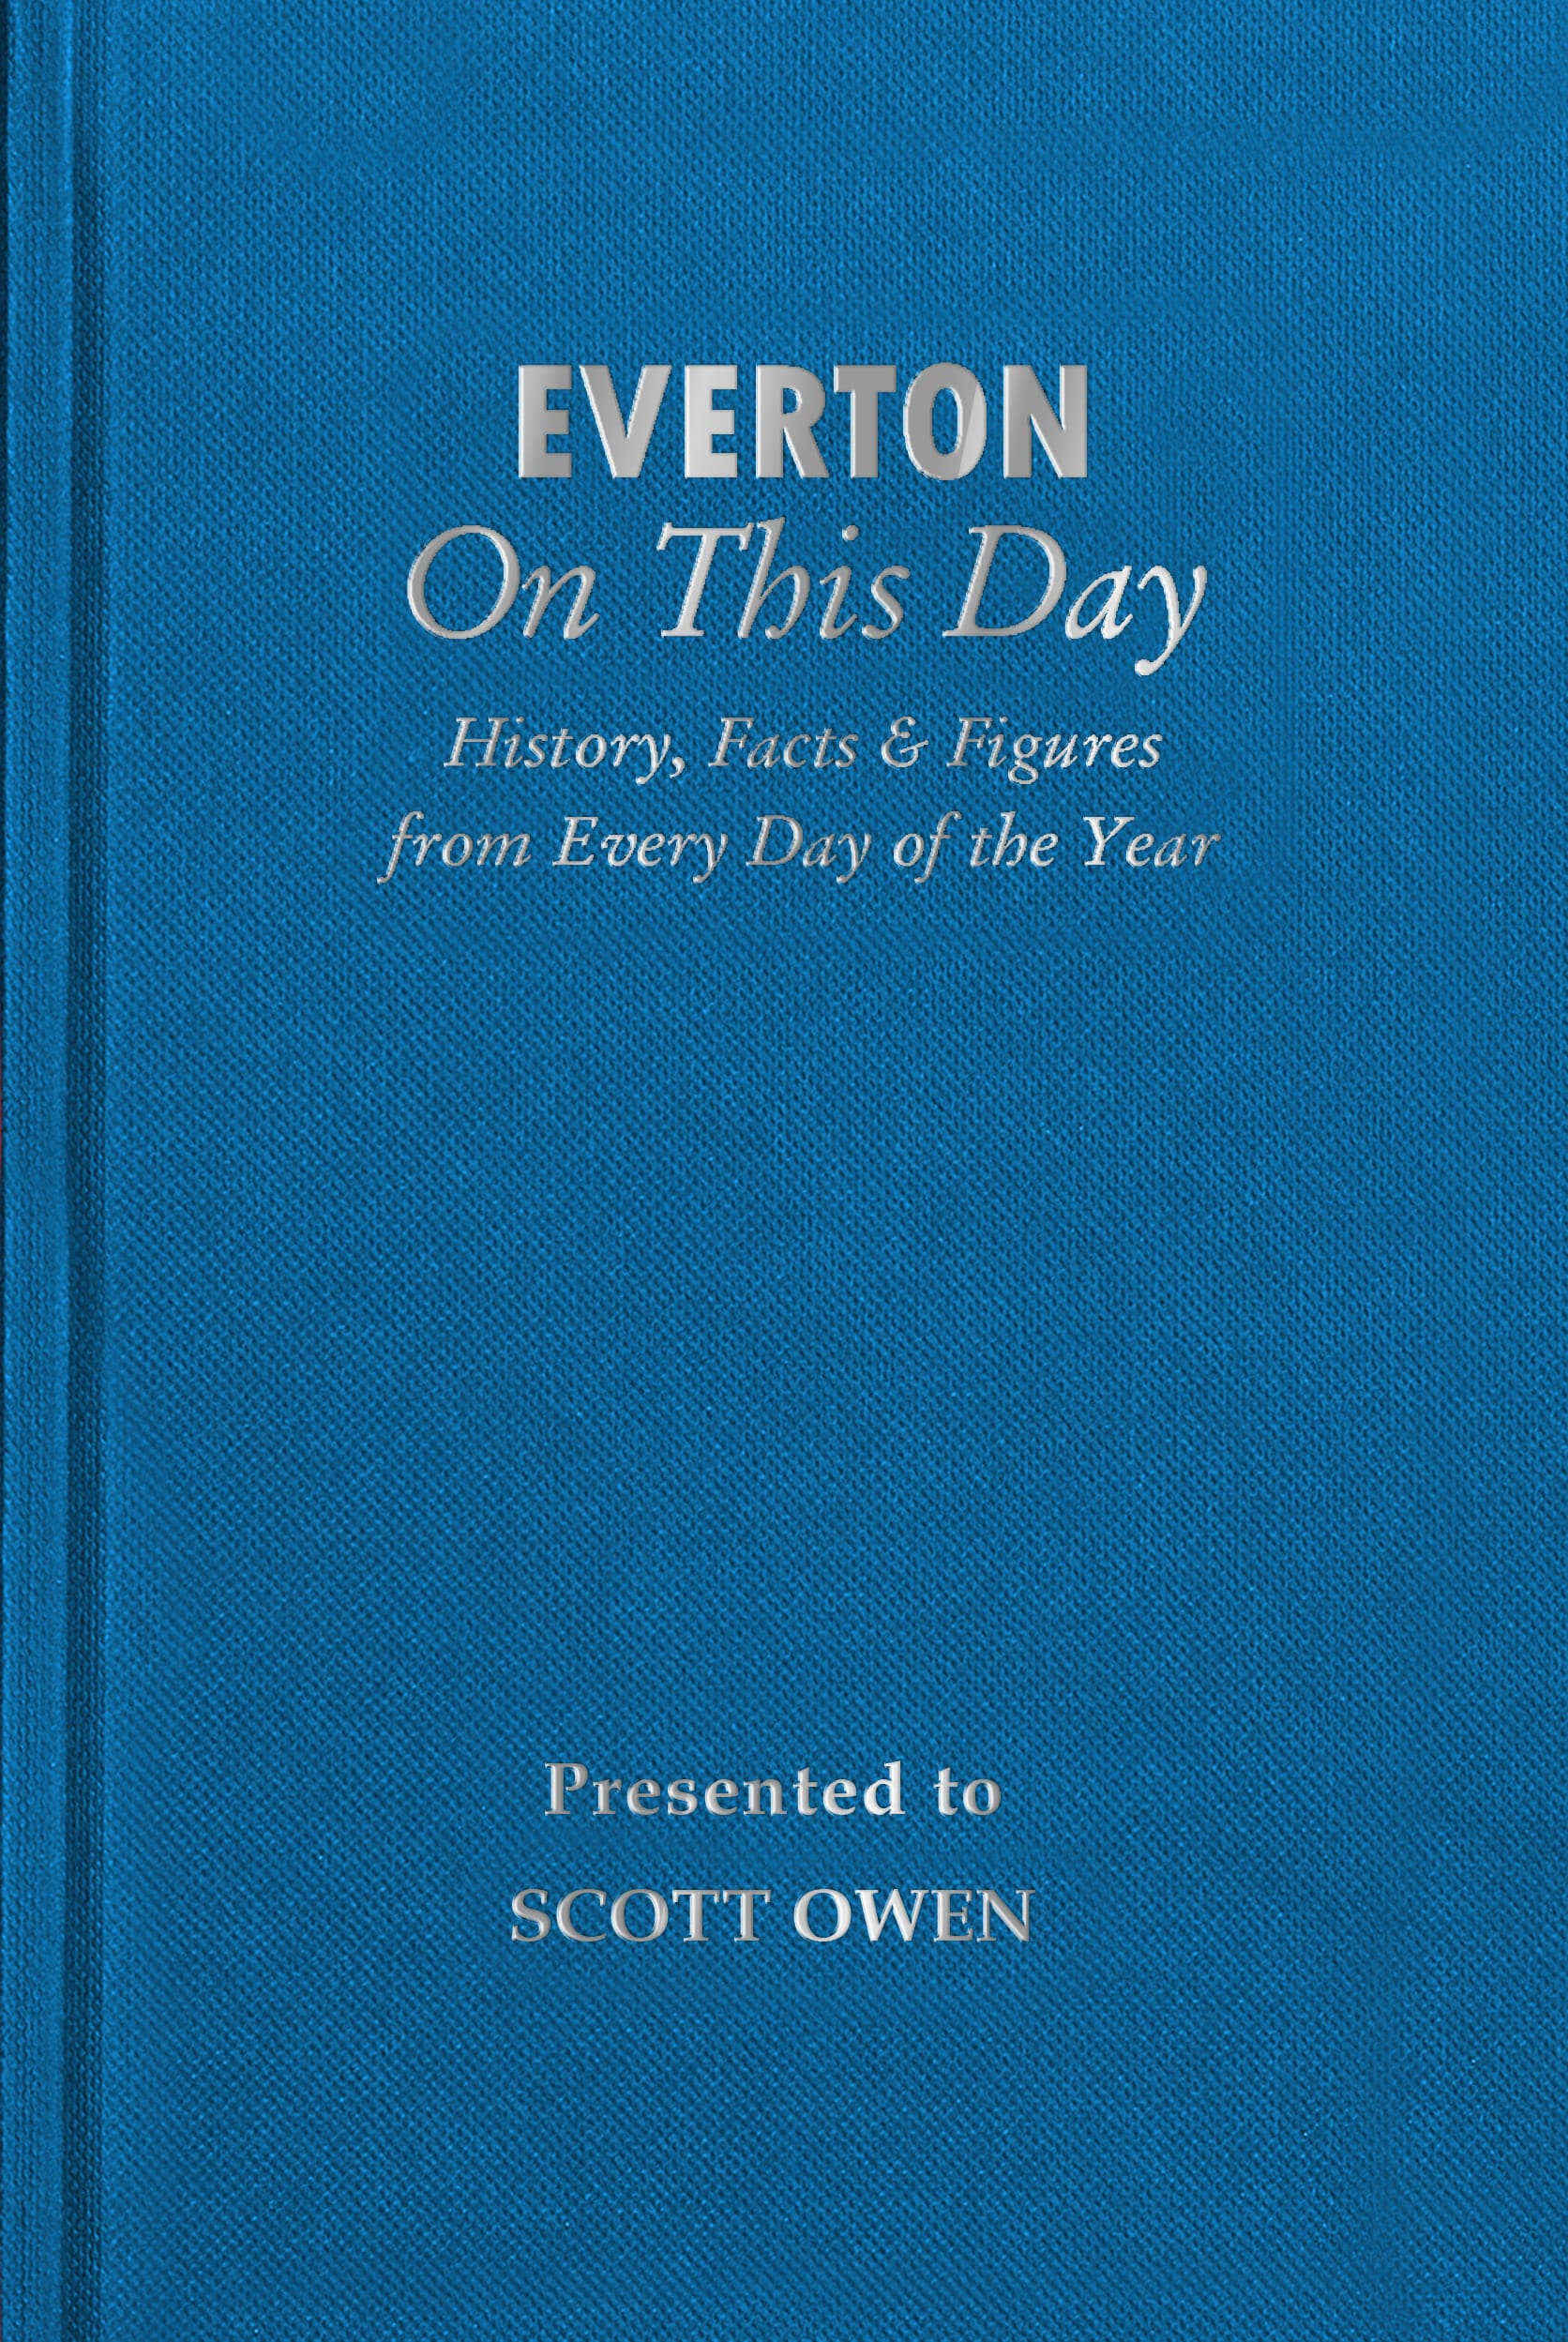 history of everton book